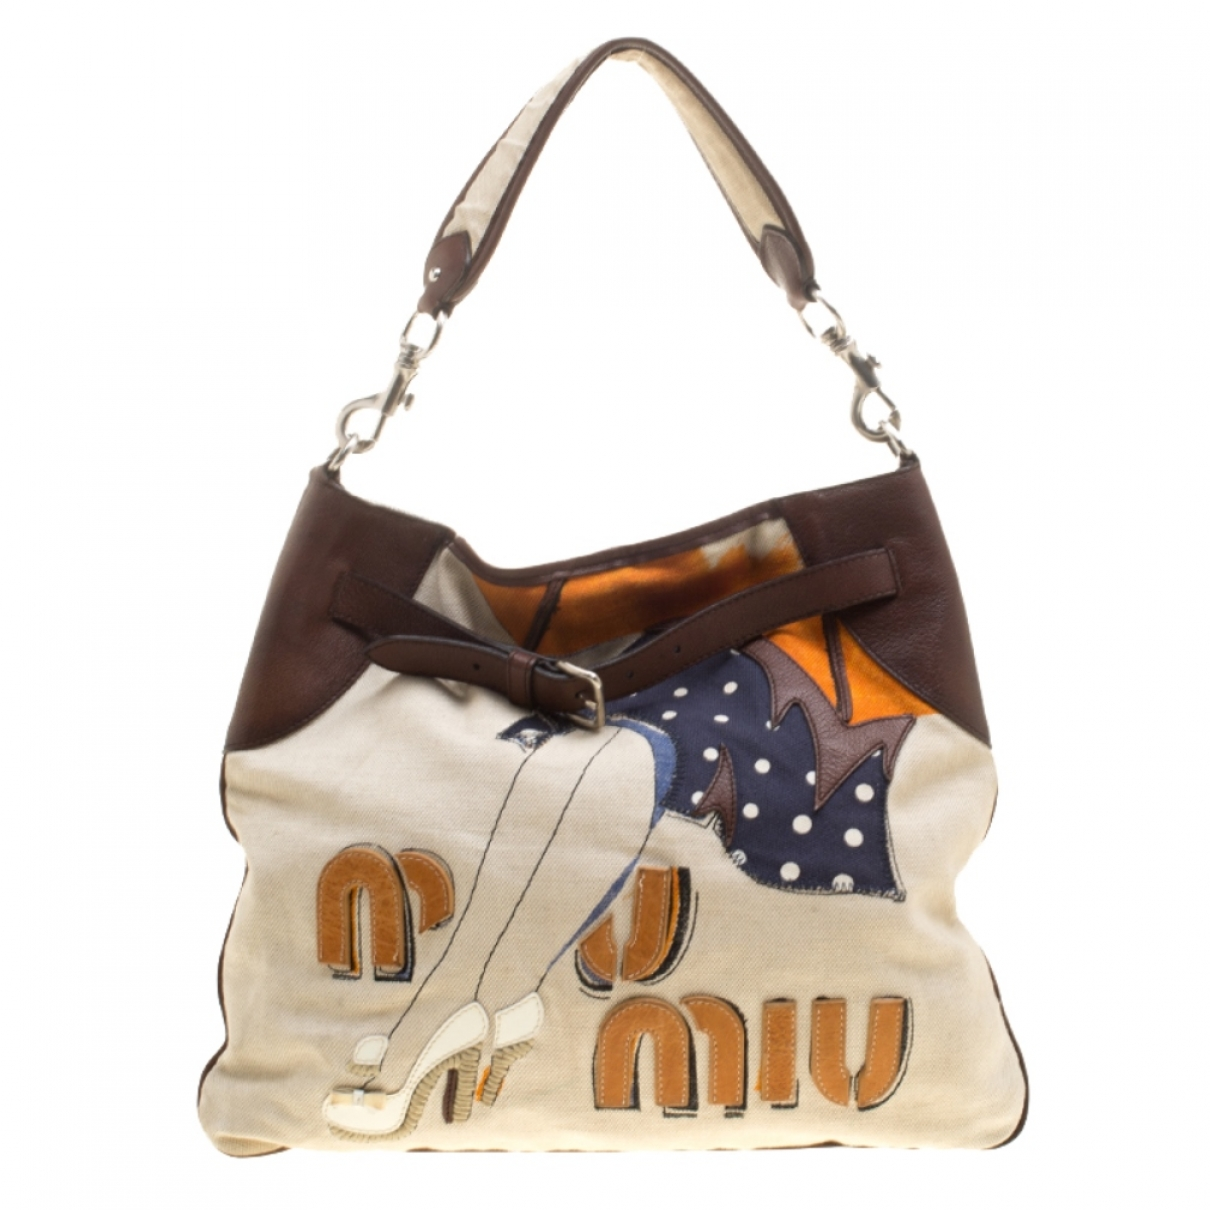 Miu Miu \N Beige Cloth handbag for Women \N